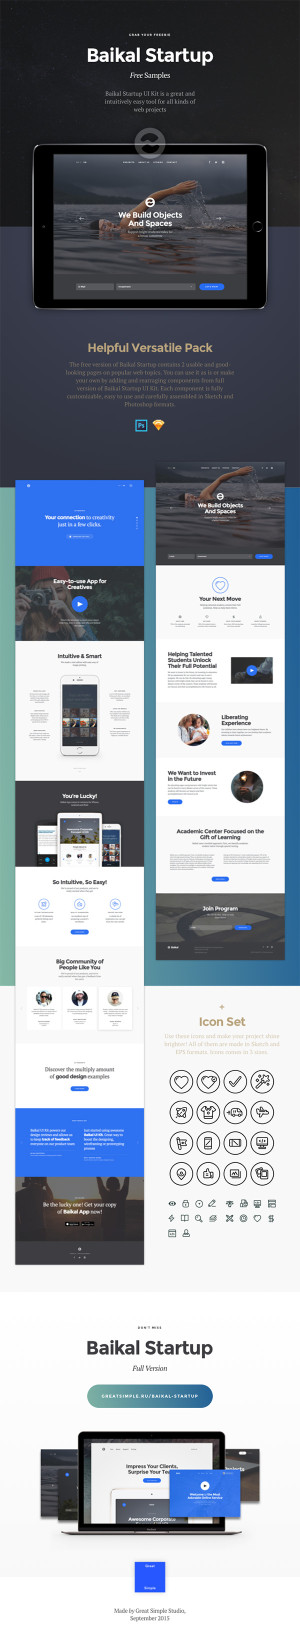 free cool website ui kit template psd